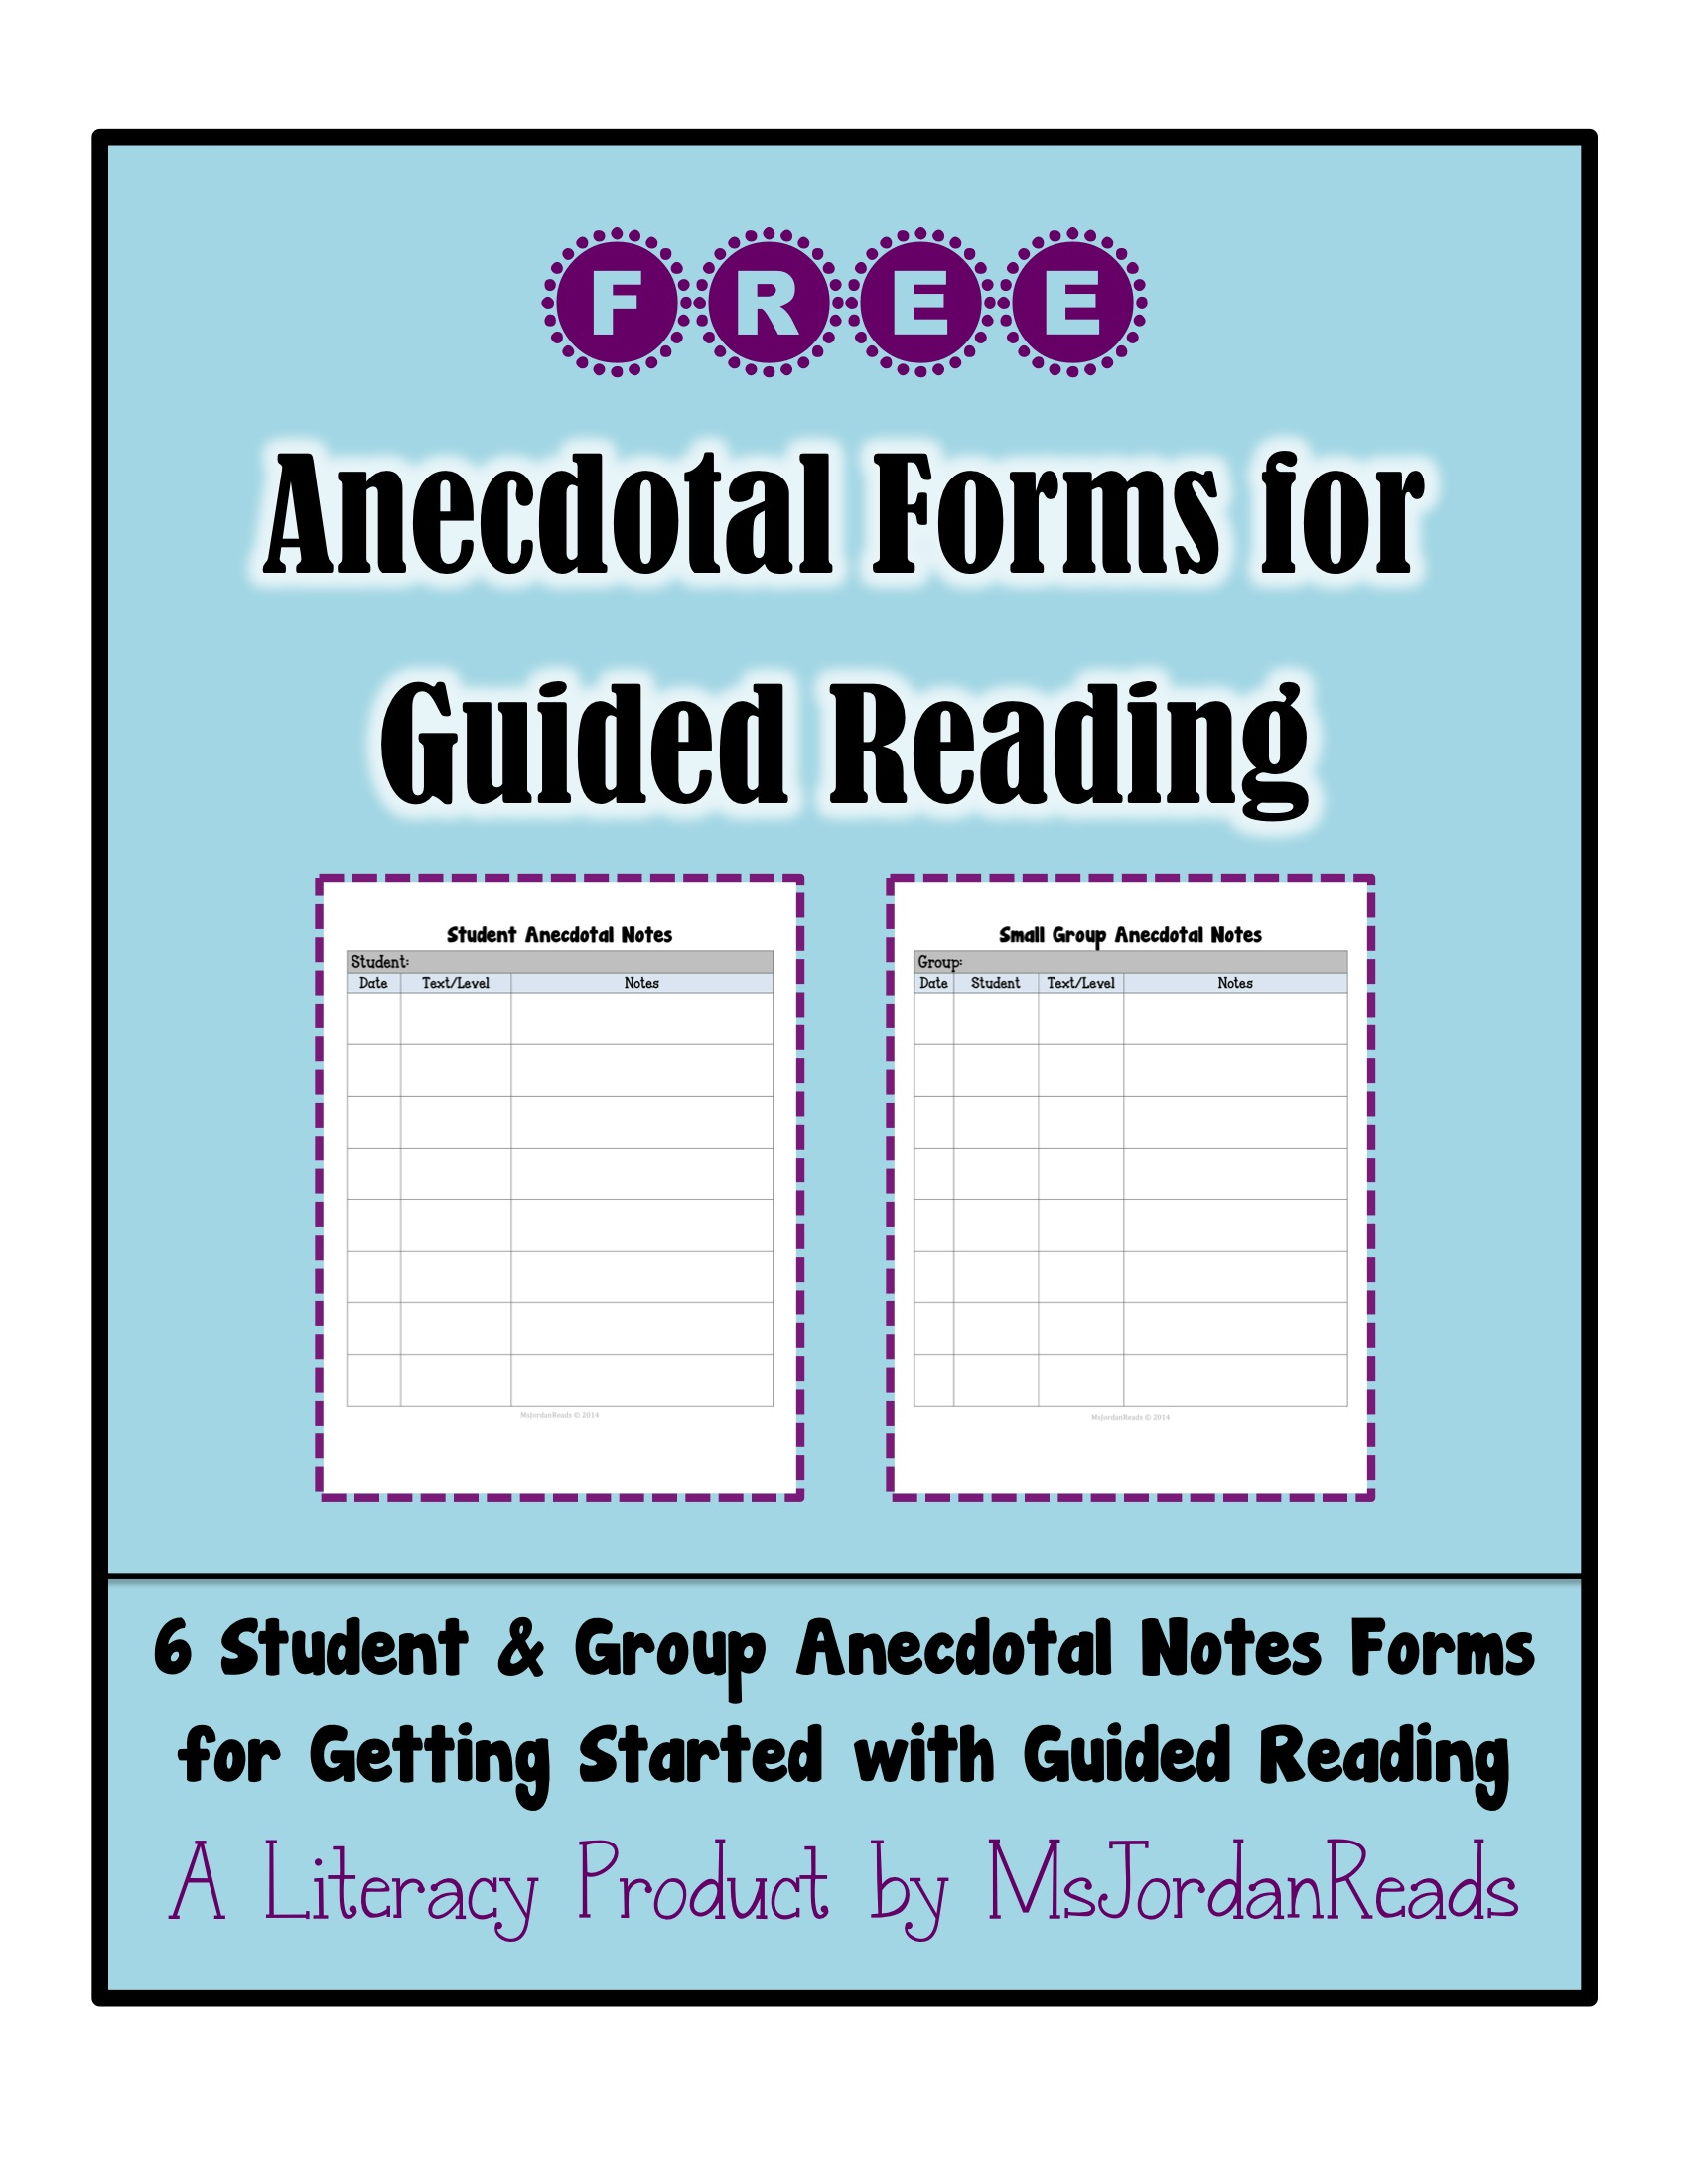 Getting Organized For Guided Reading Msjordanreads